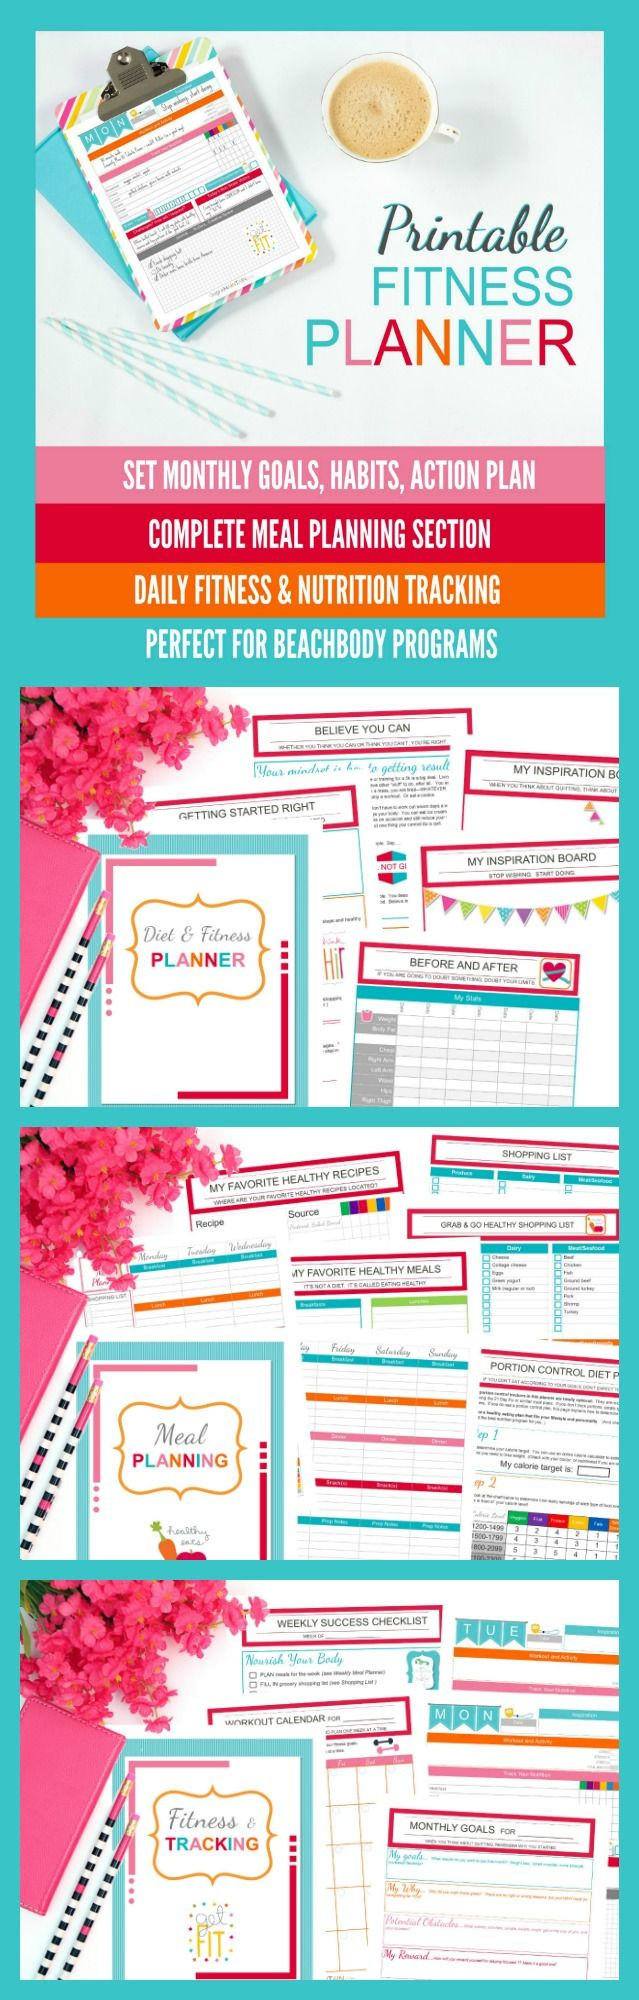 Printable Diet & Fitness planner to set monthly goals, map ...